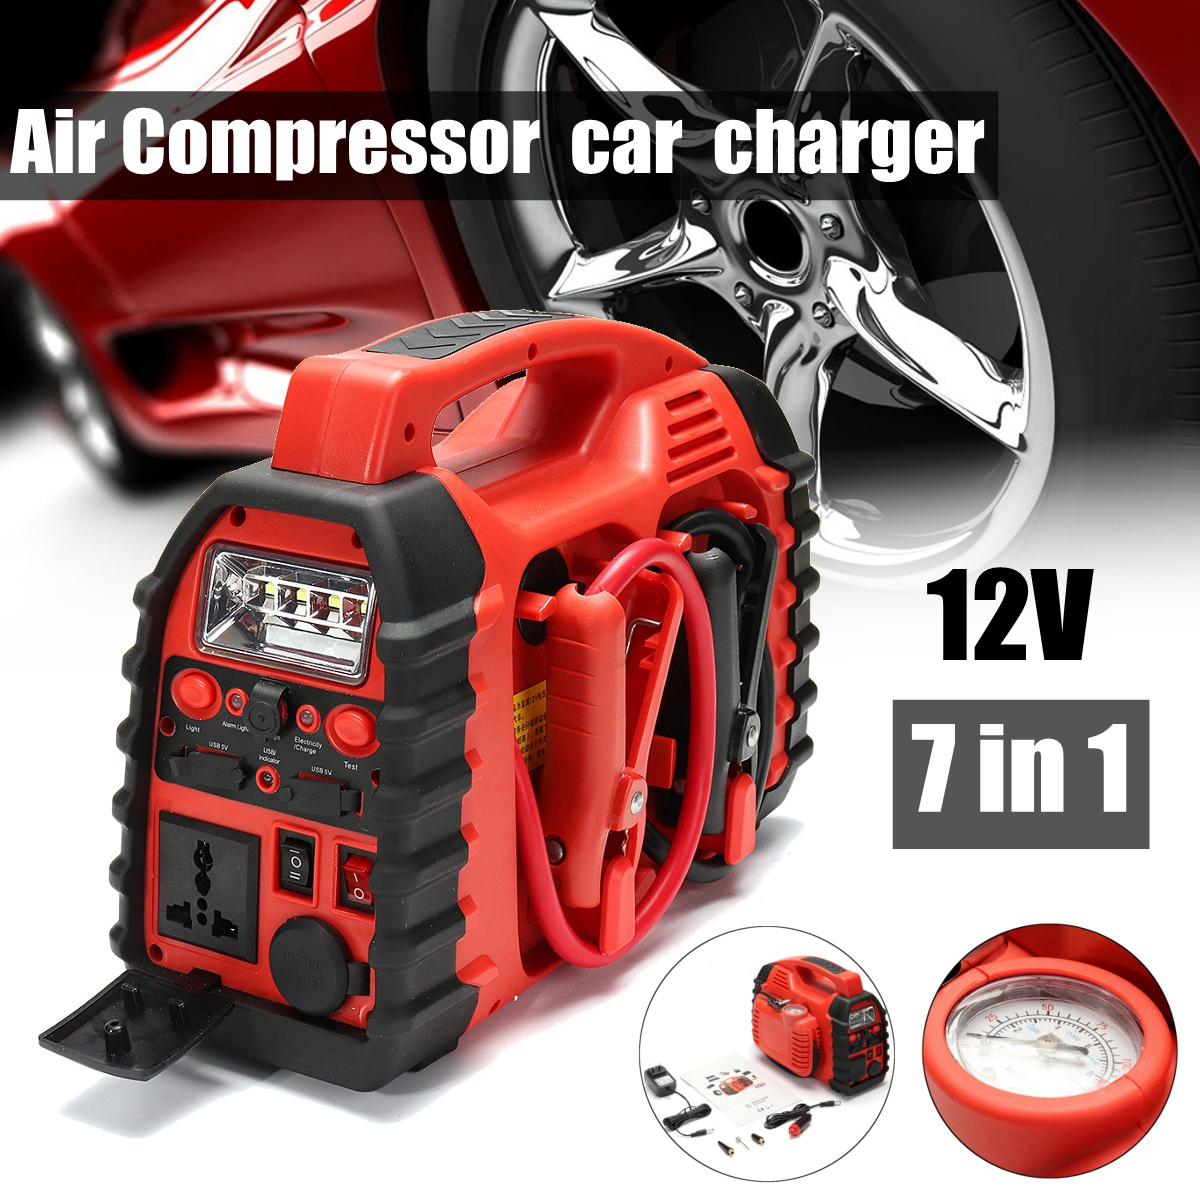 24v 26600mah Portable Start Battery Usb Car Charger Booster Jump Short Circuit Protection Starter 12v Truck 7 In 1 6 Multifunation Air Compressor